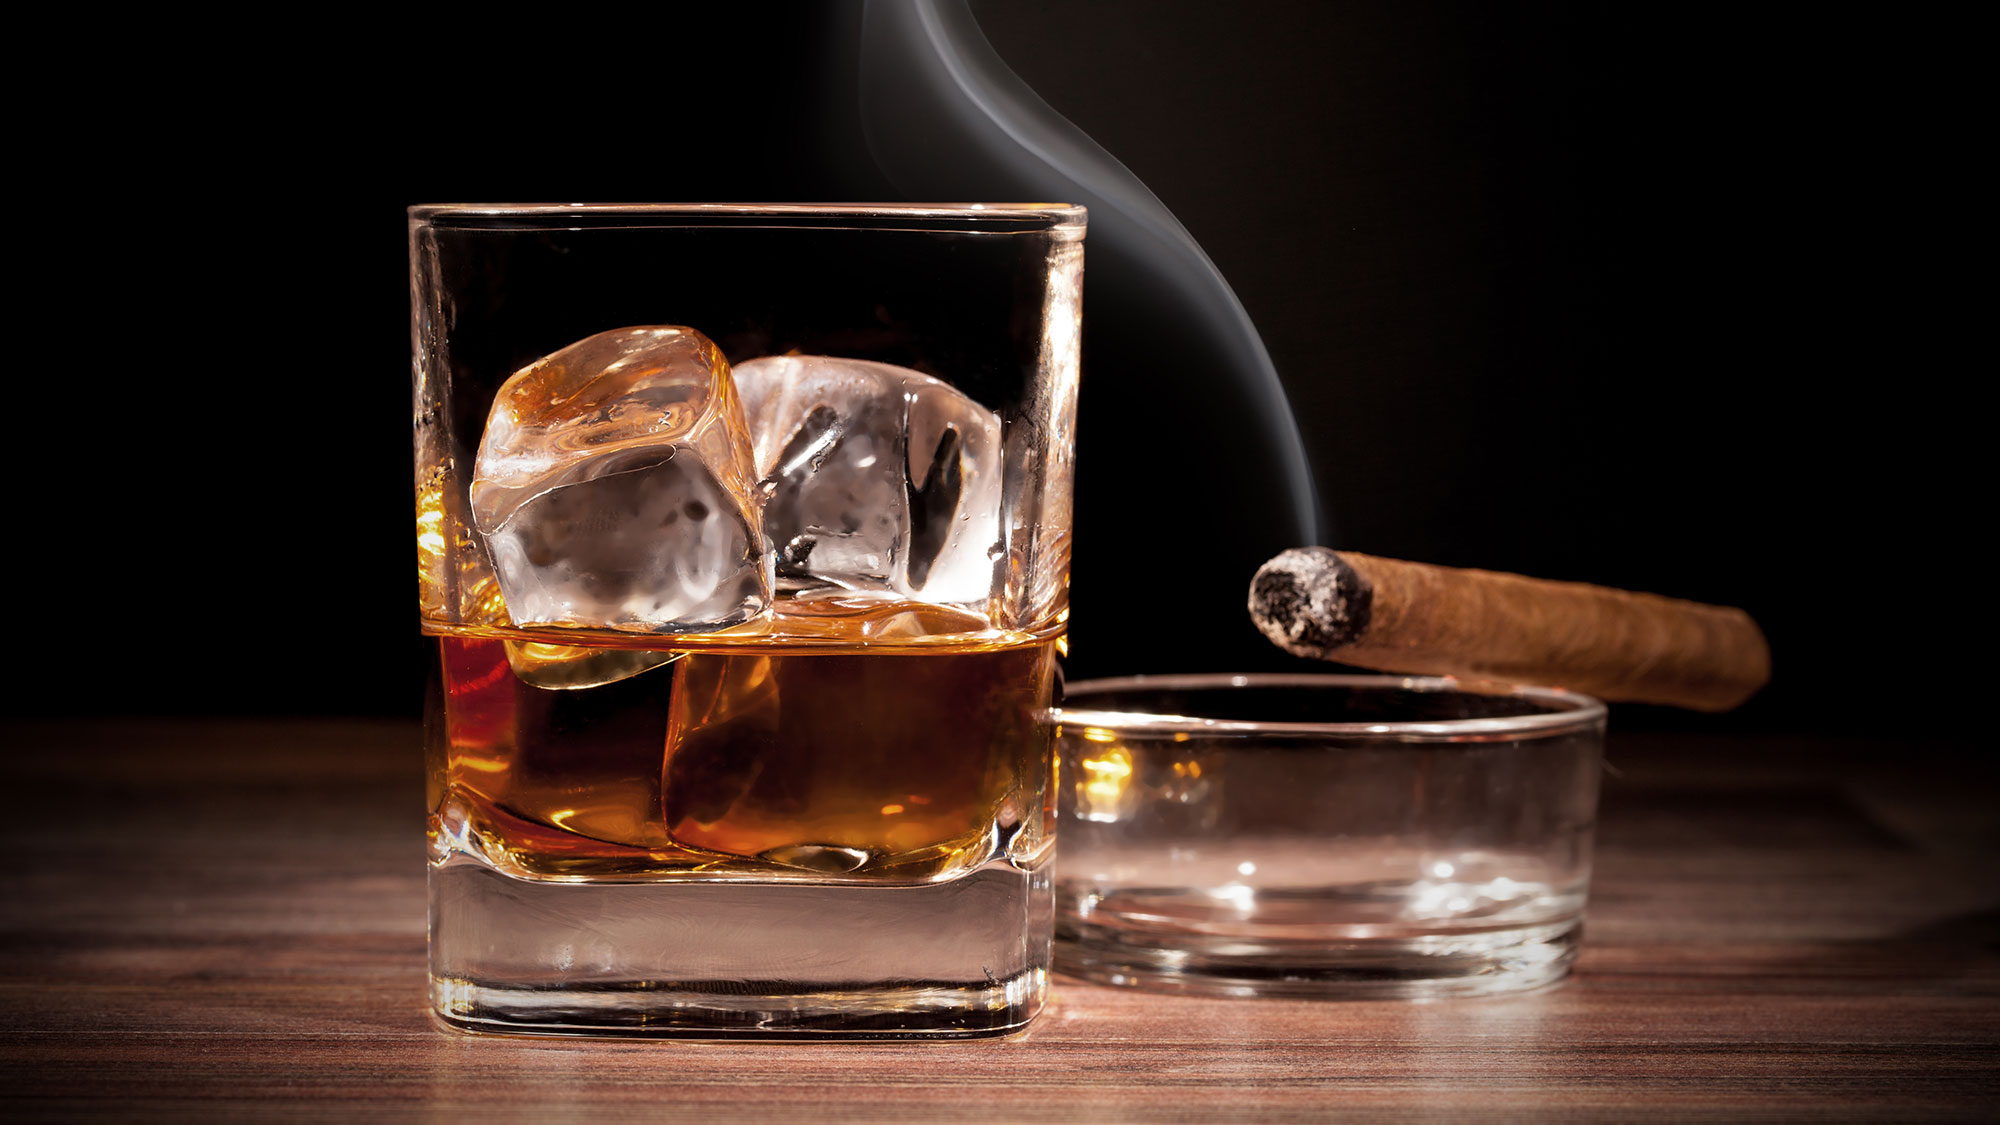 Glass of whiskey with a smoking cigar.